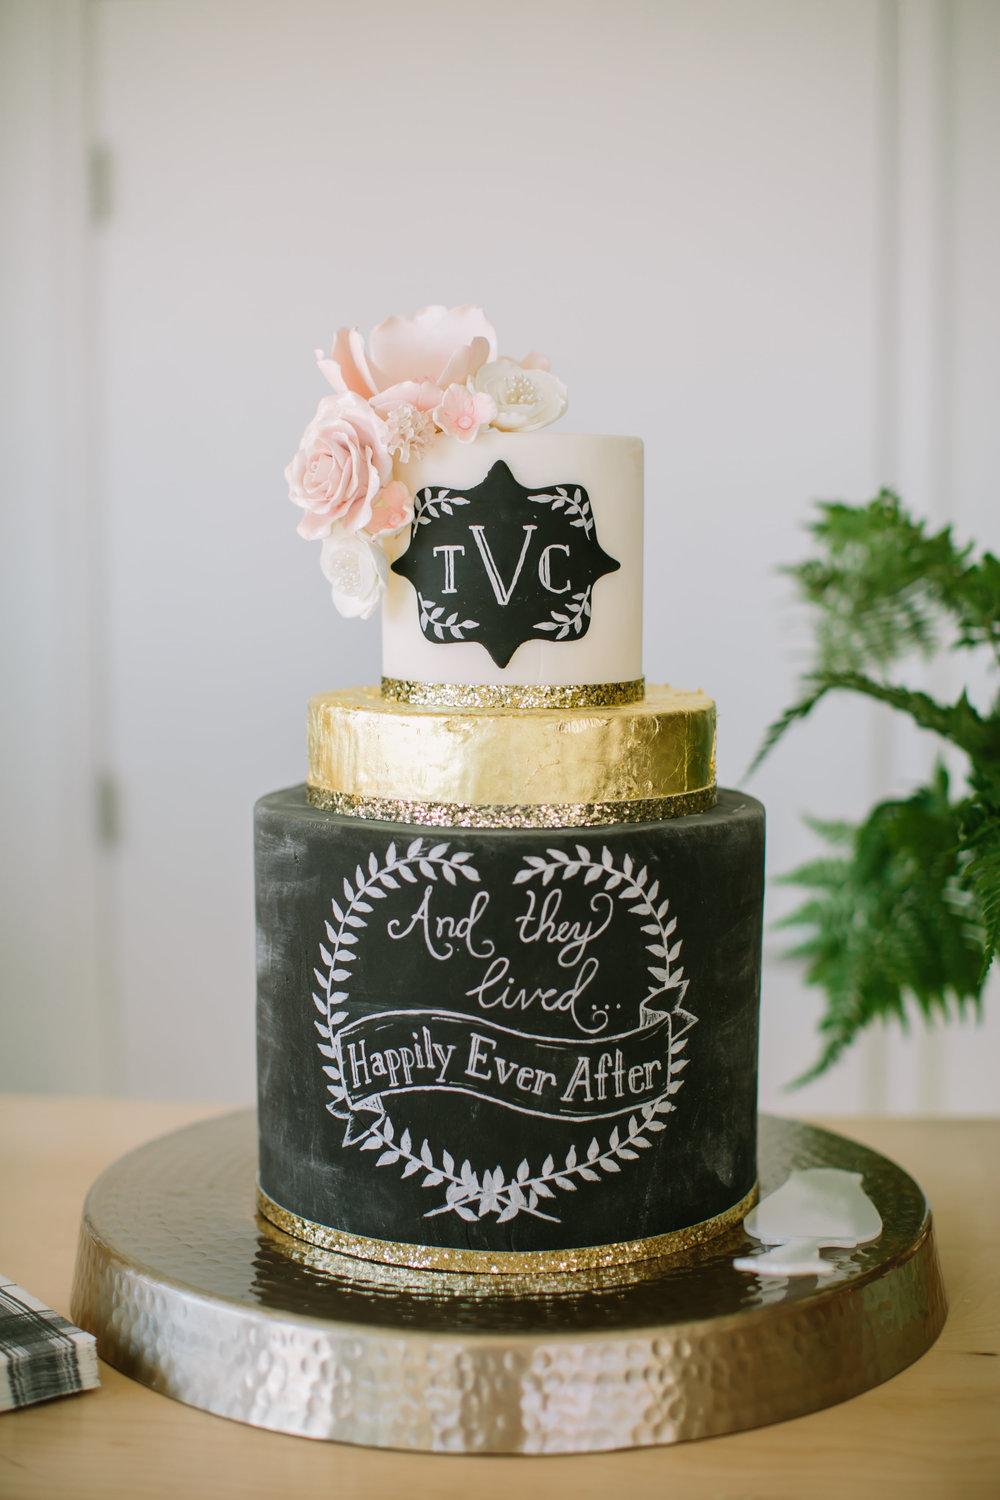 Wedding cakes the vintage cake the vintage cake junglespirit Choice Image